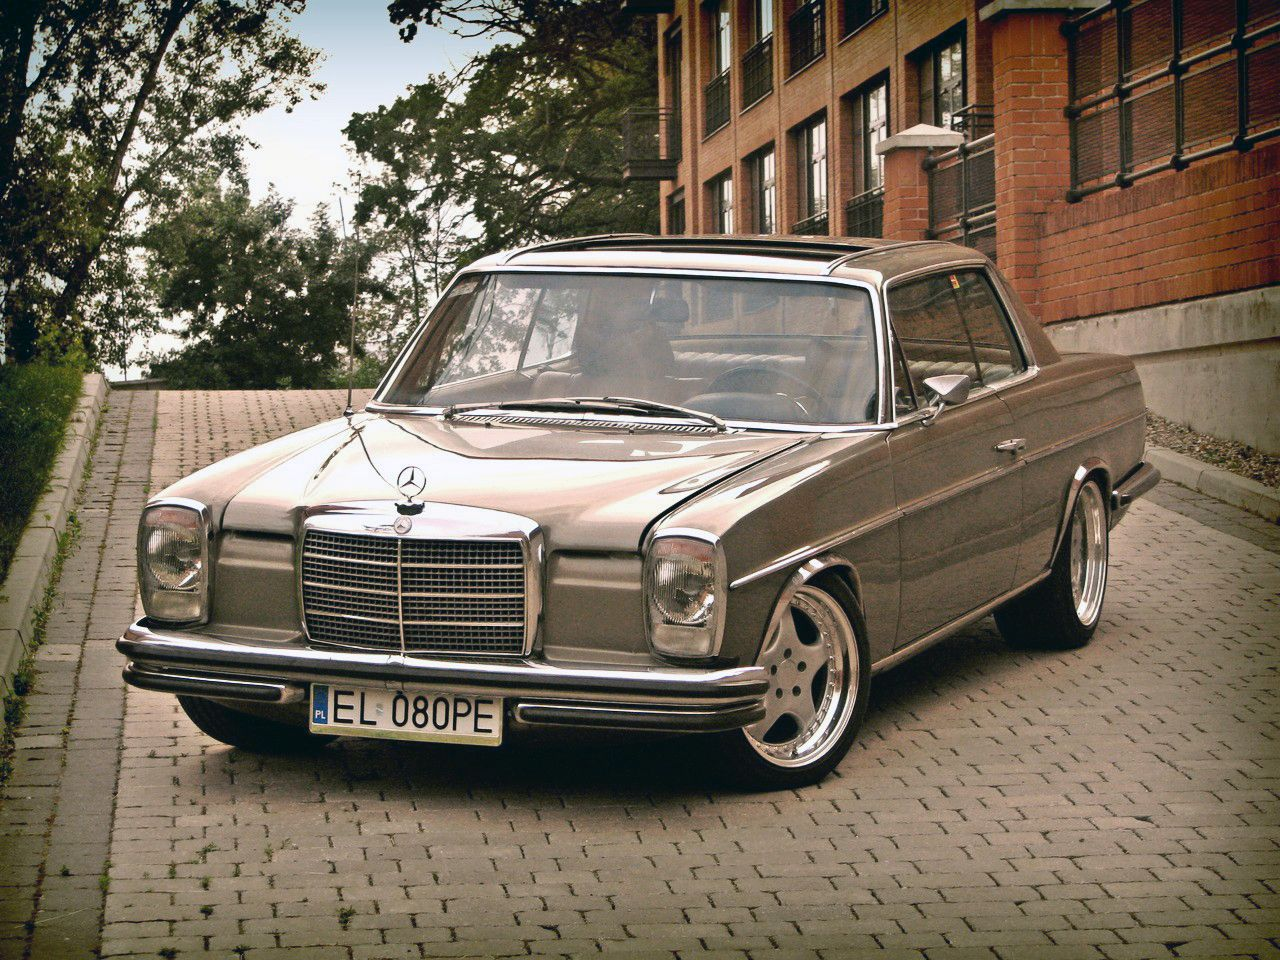 Classic Cars For Sale In Greece: Best 25+ Mercedes Benz C280 Ideas On Pinterest